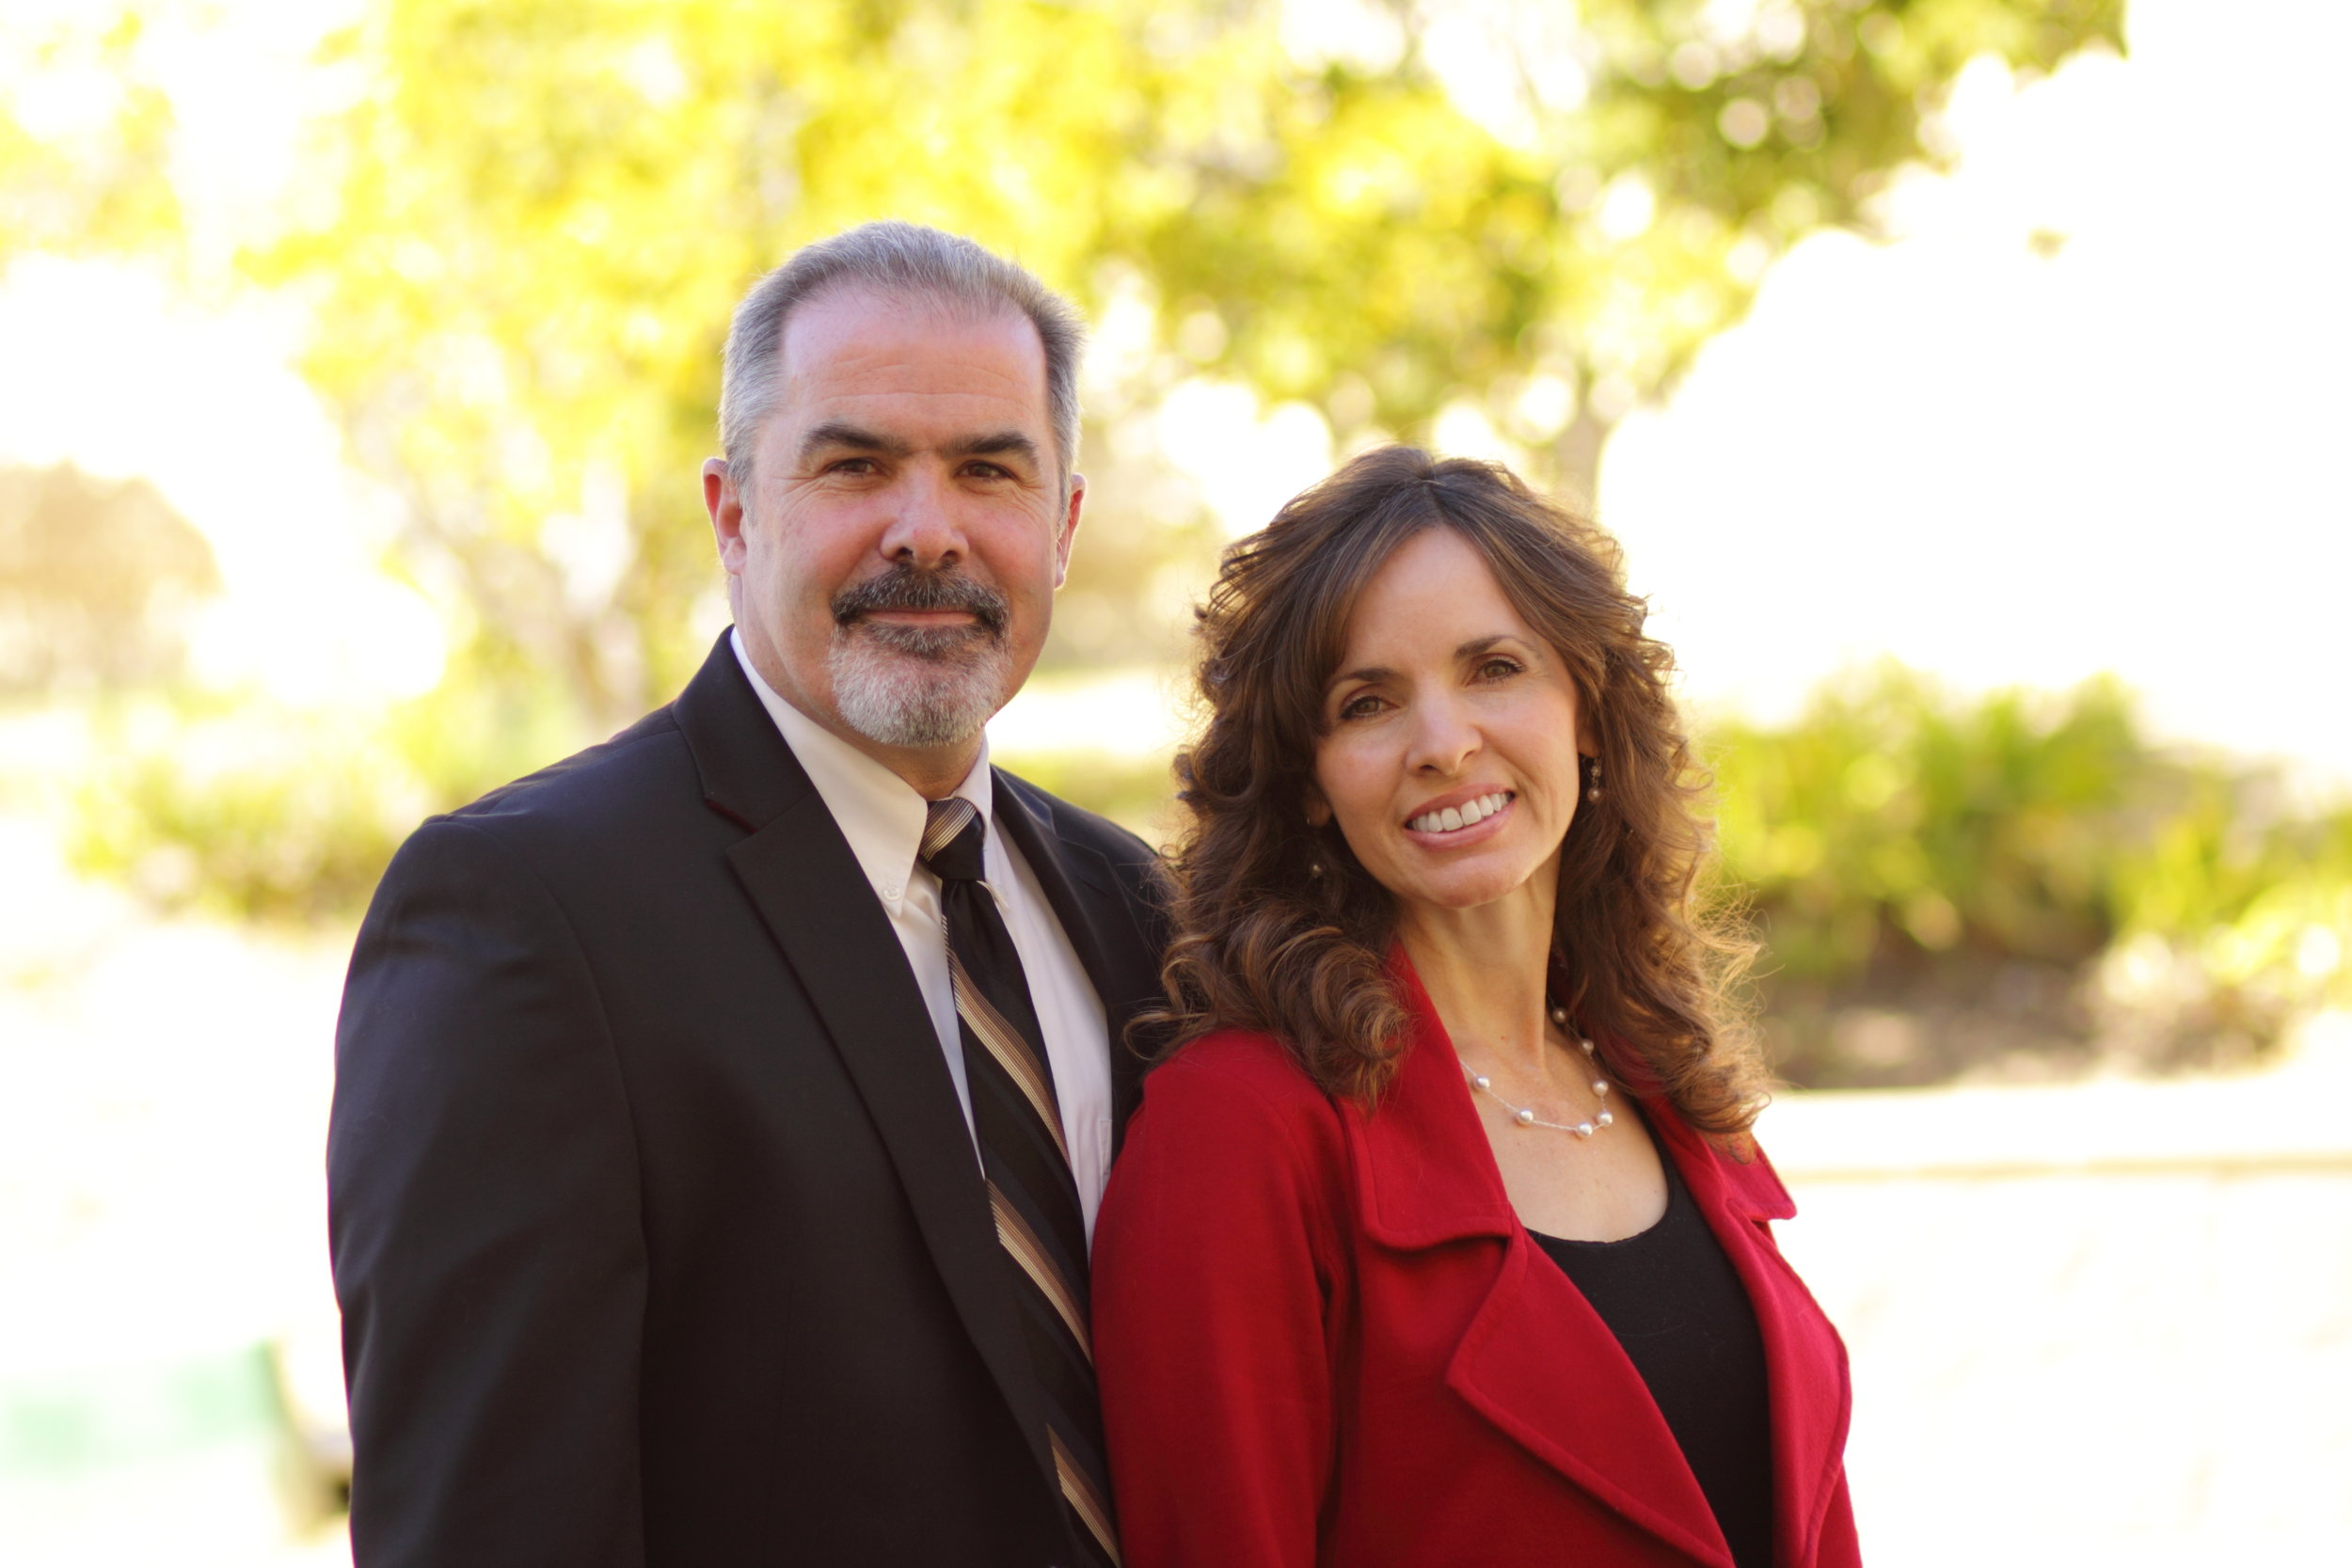 Michael Kay   Michael is a Deacon of Grace Fallbrook.  Michael and his wife Michelle have 3 adult children.